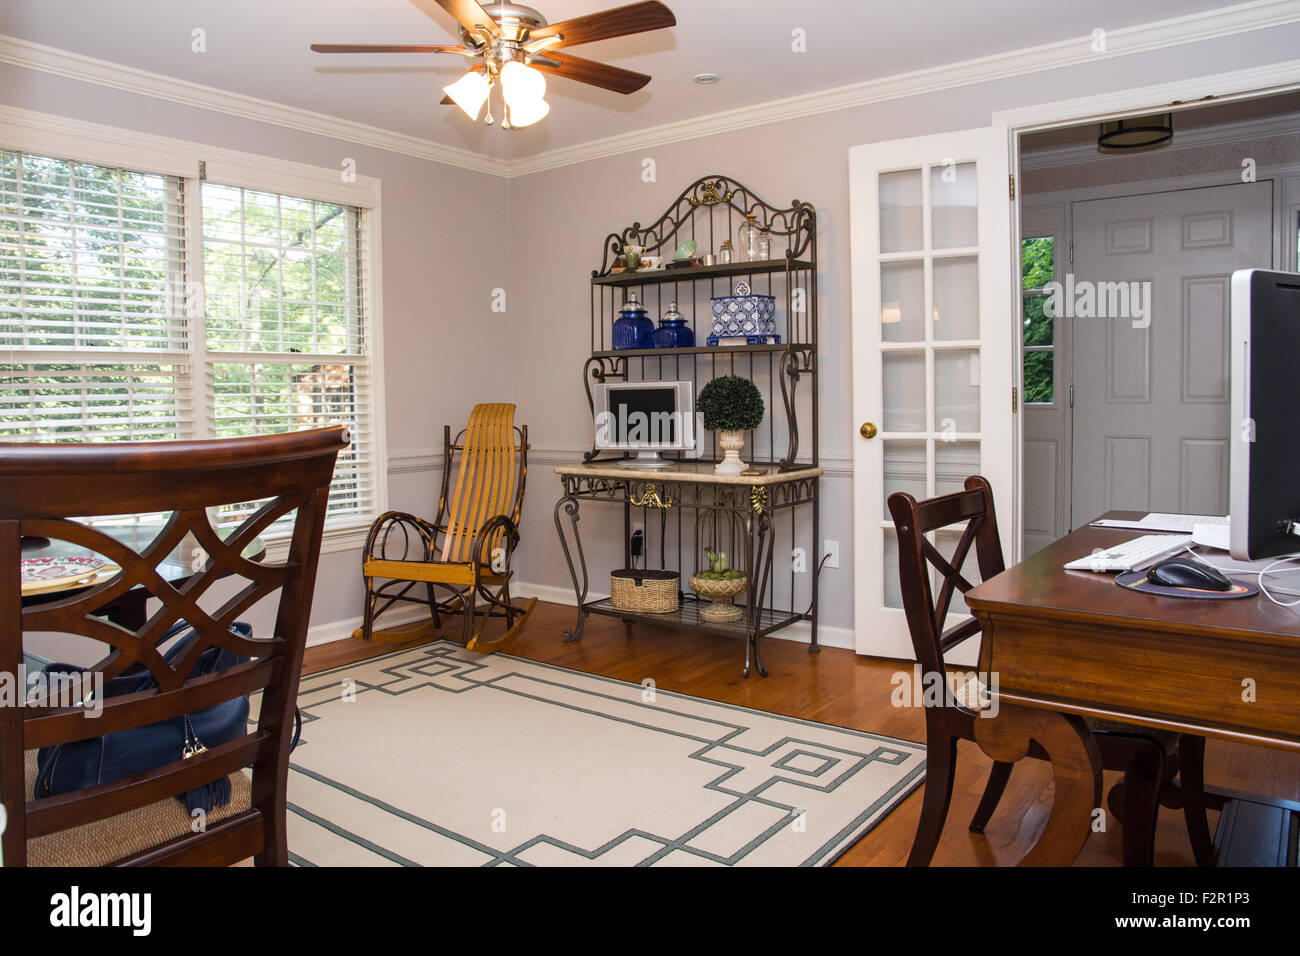 A Wrought Iron Bakeru0027s Rack, A Rocking Chair, And A Desk And Chair Are An  Inviting Setting In A Warm, Bright Breakfast Room.